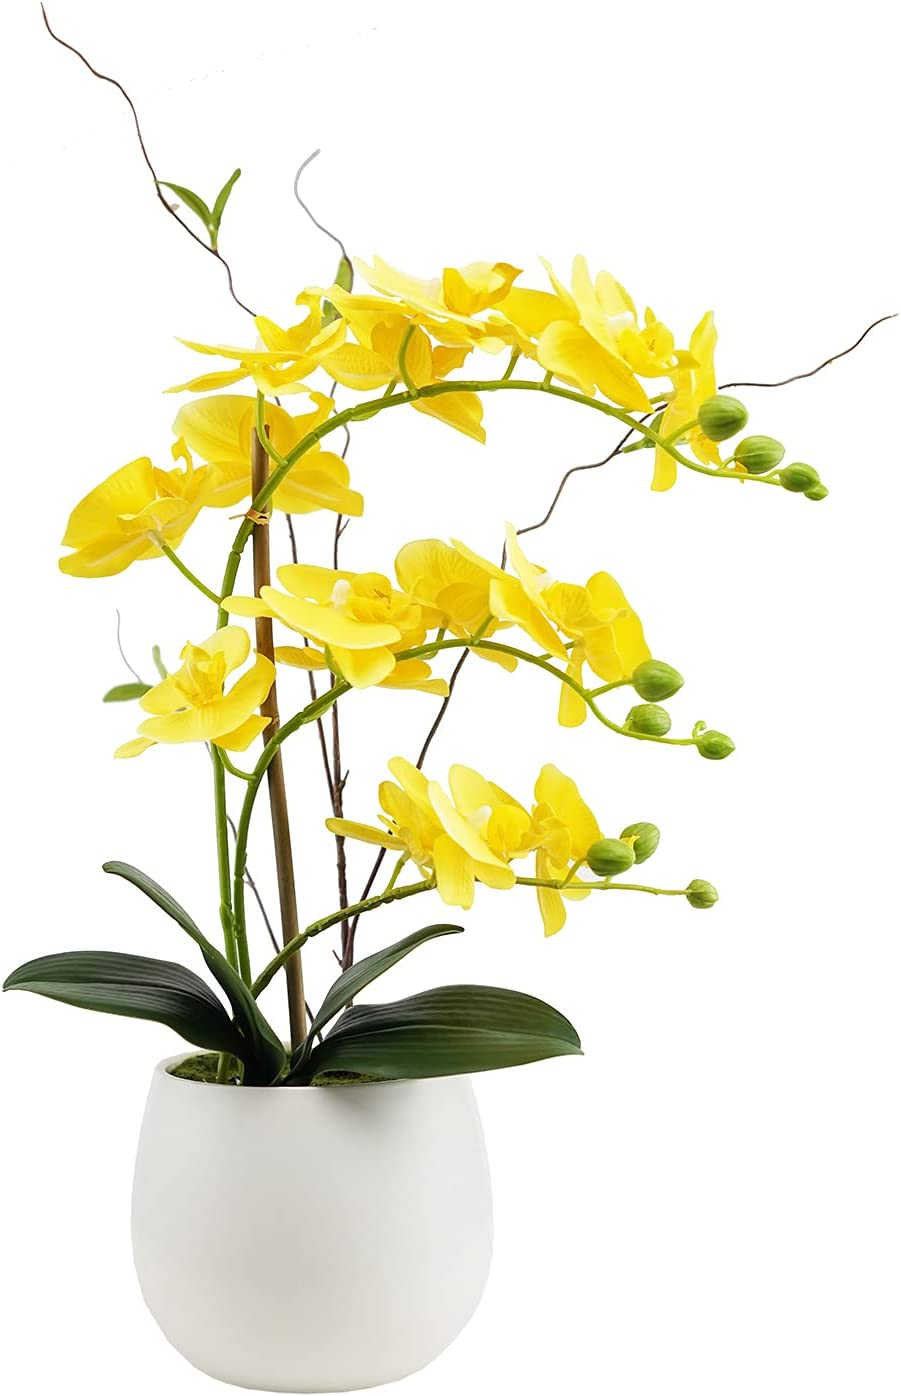 Artificial Orchid Flower Arrangements Artificial in Vase Phalaenopsis Yellow Flowers, Fake Orchids Artificial Plants Faux Flowers for Decoration Home Office Party Table Decor